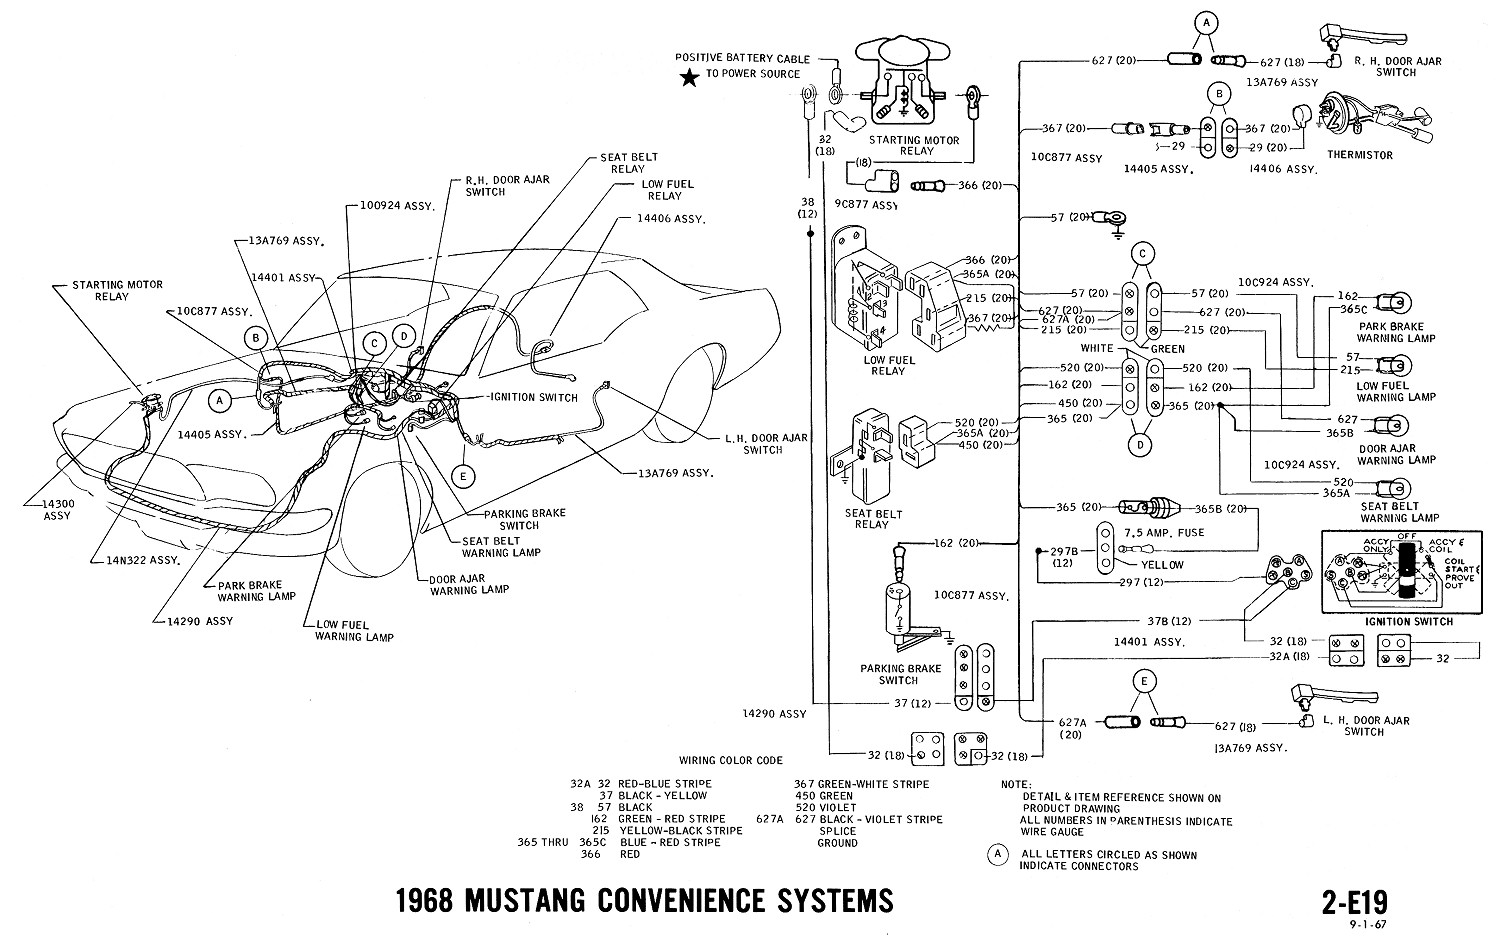 66 C10 Wiring Diagrams Auto Electrical Diagram 69 Vw Van 1968 Mustang And Vacuum Schematics